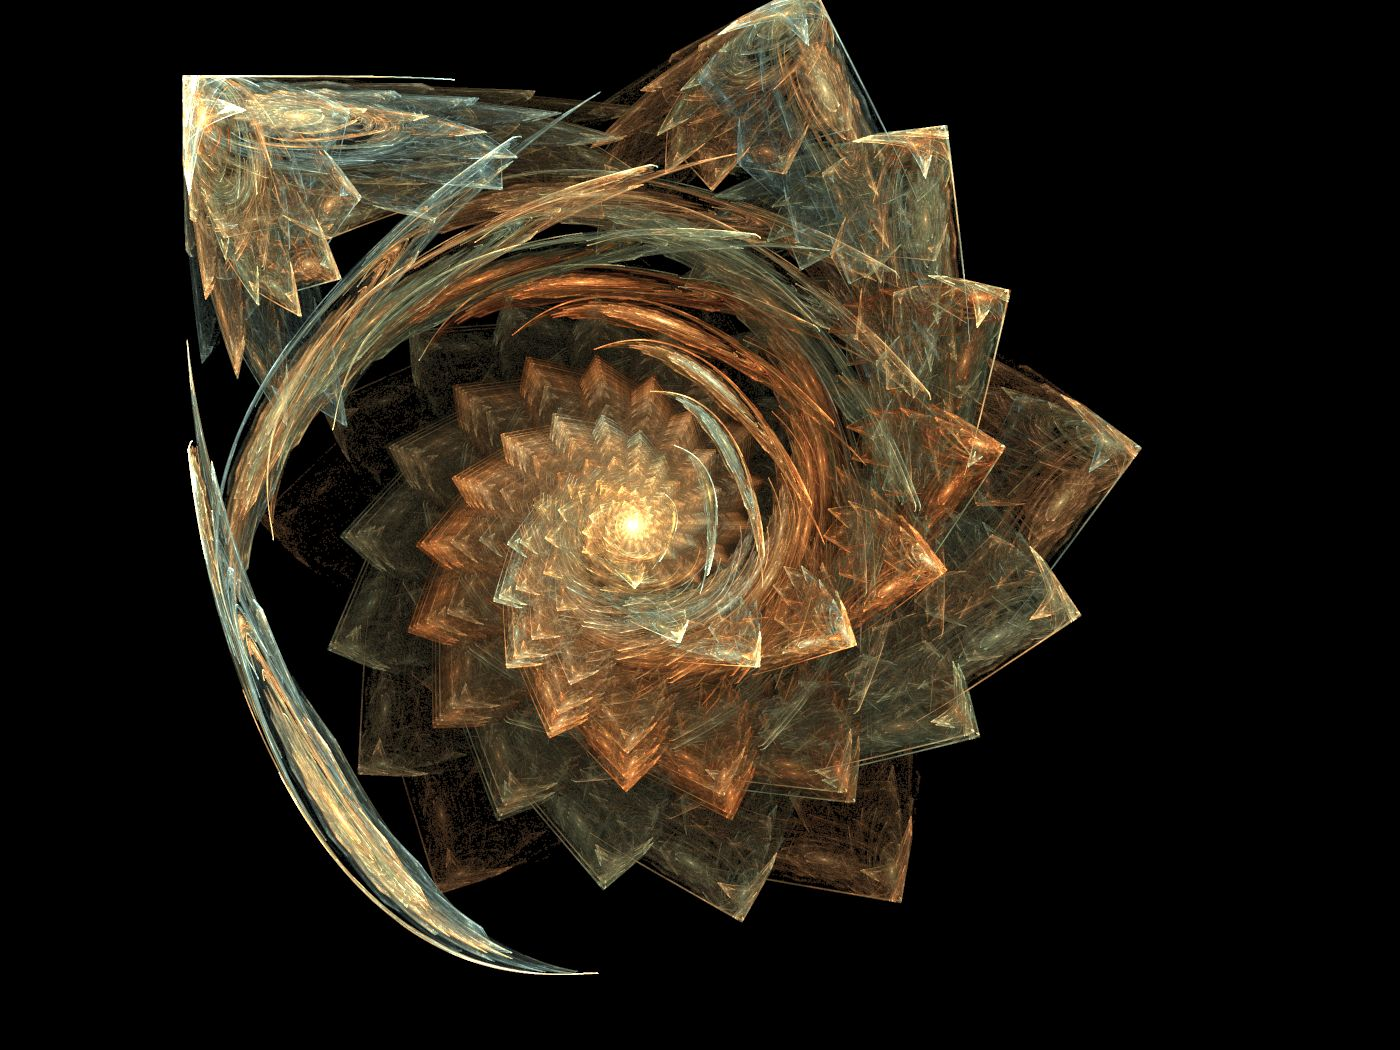 3d Animated Gif Wallpapers Fractal Animations